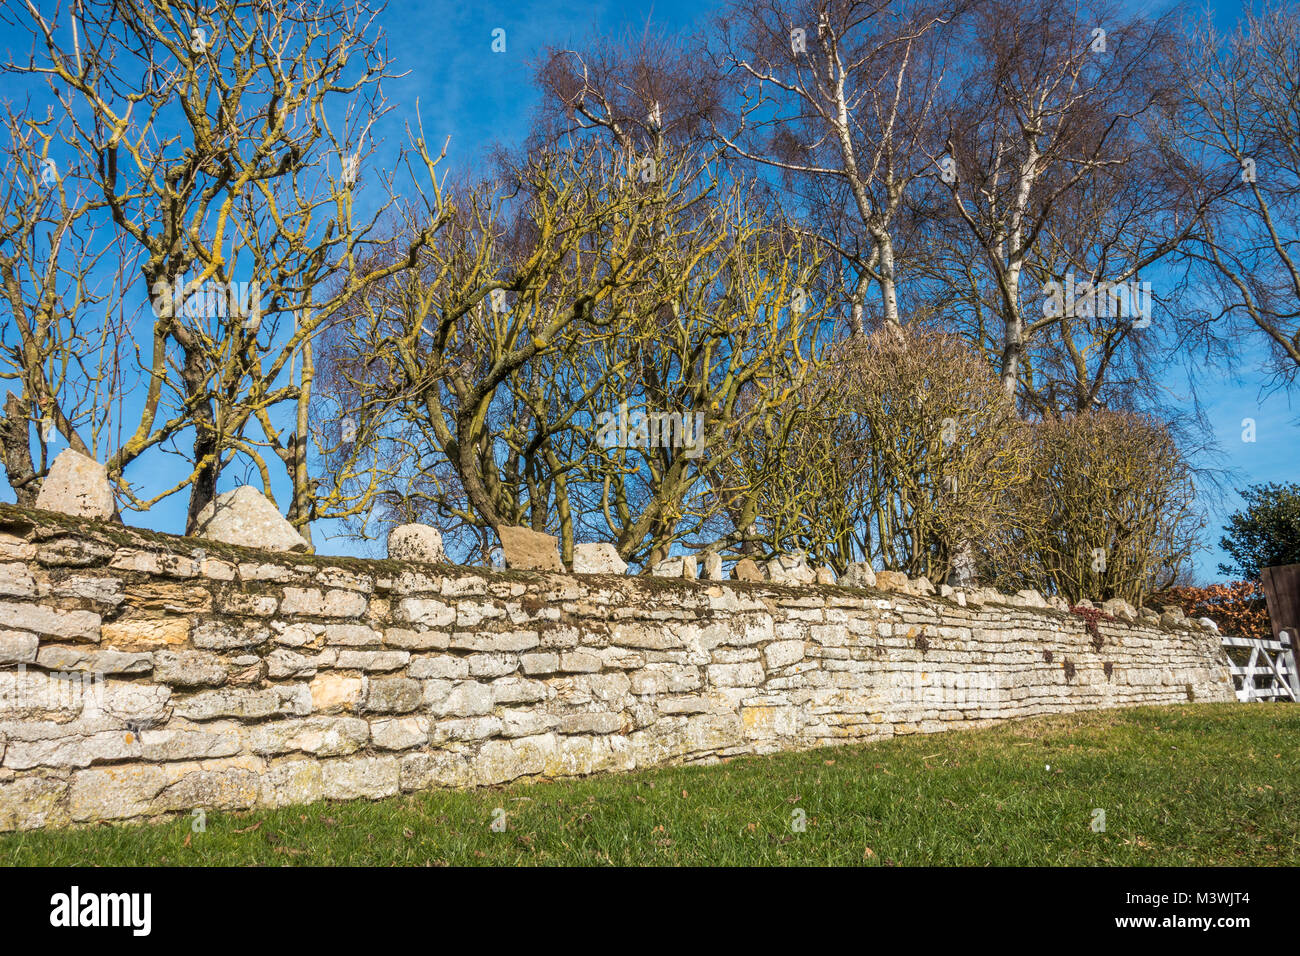 An ancient stone wall, ending with a traditional wooden bar gate, with bare trees in winter, against a clear blue - Stock Image